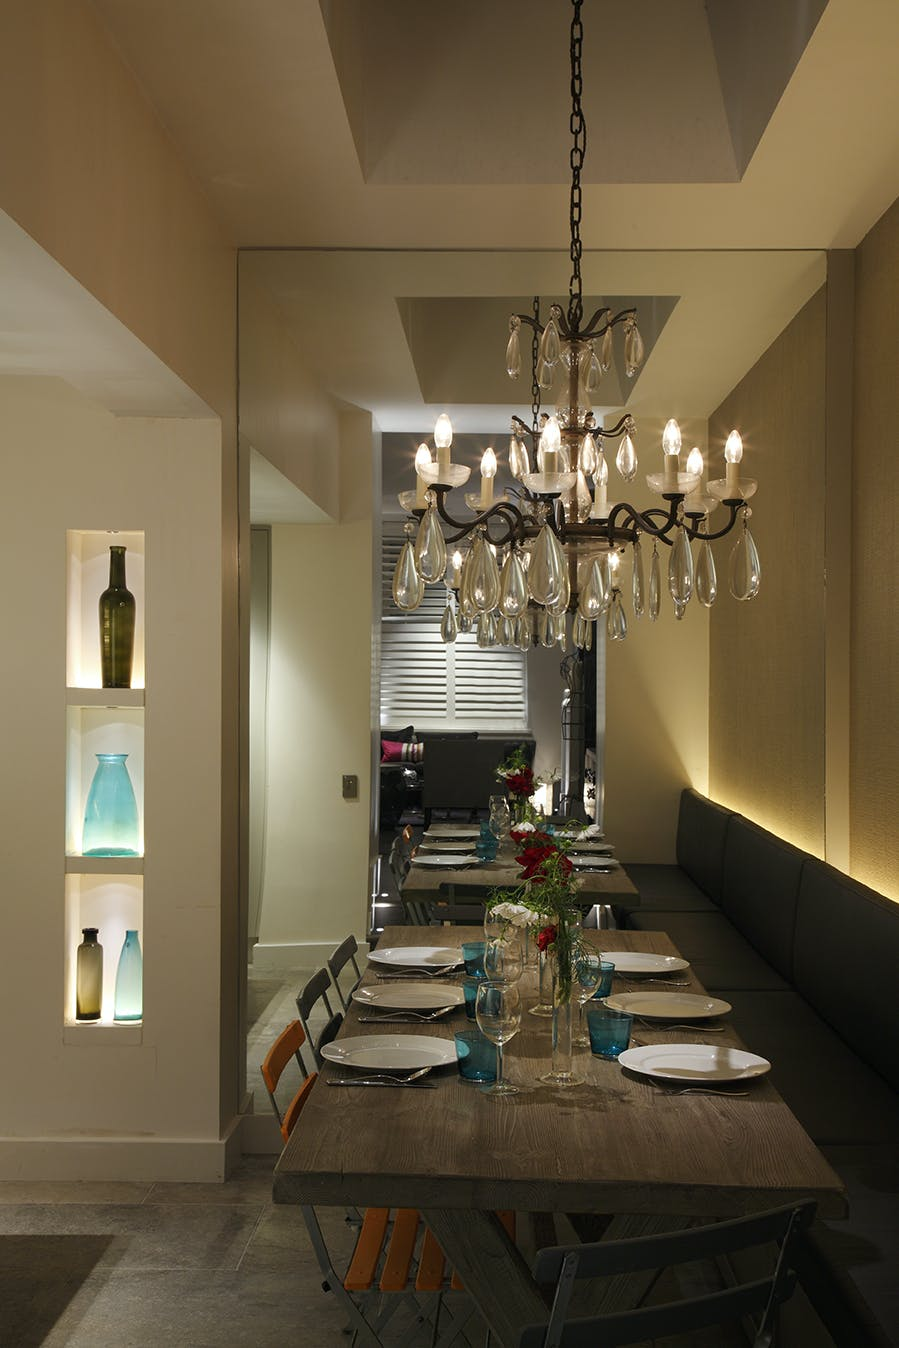 syon spotlight lights void over dining table